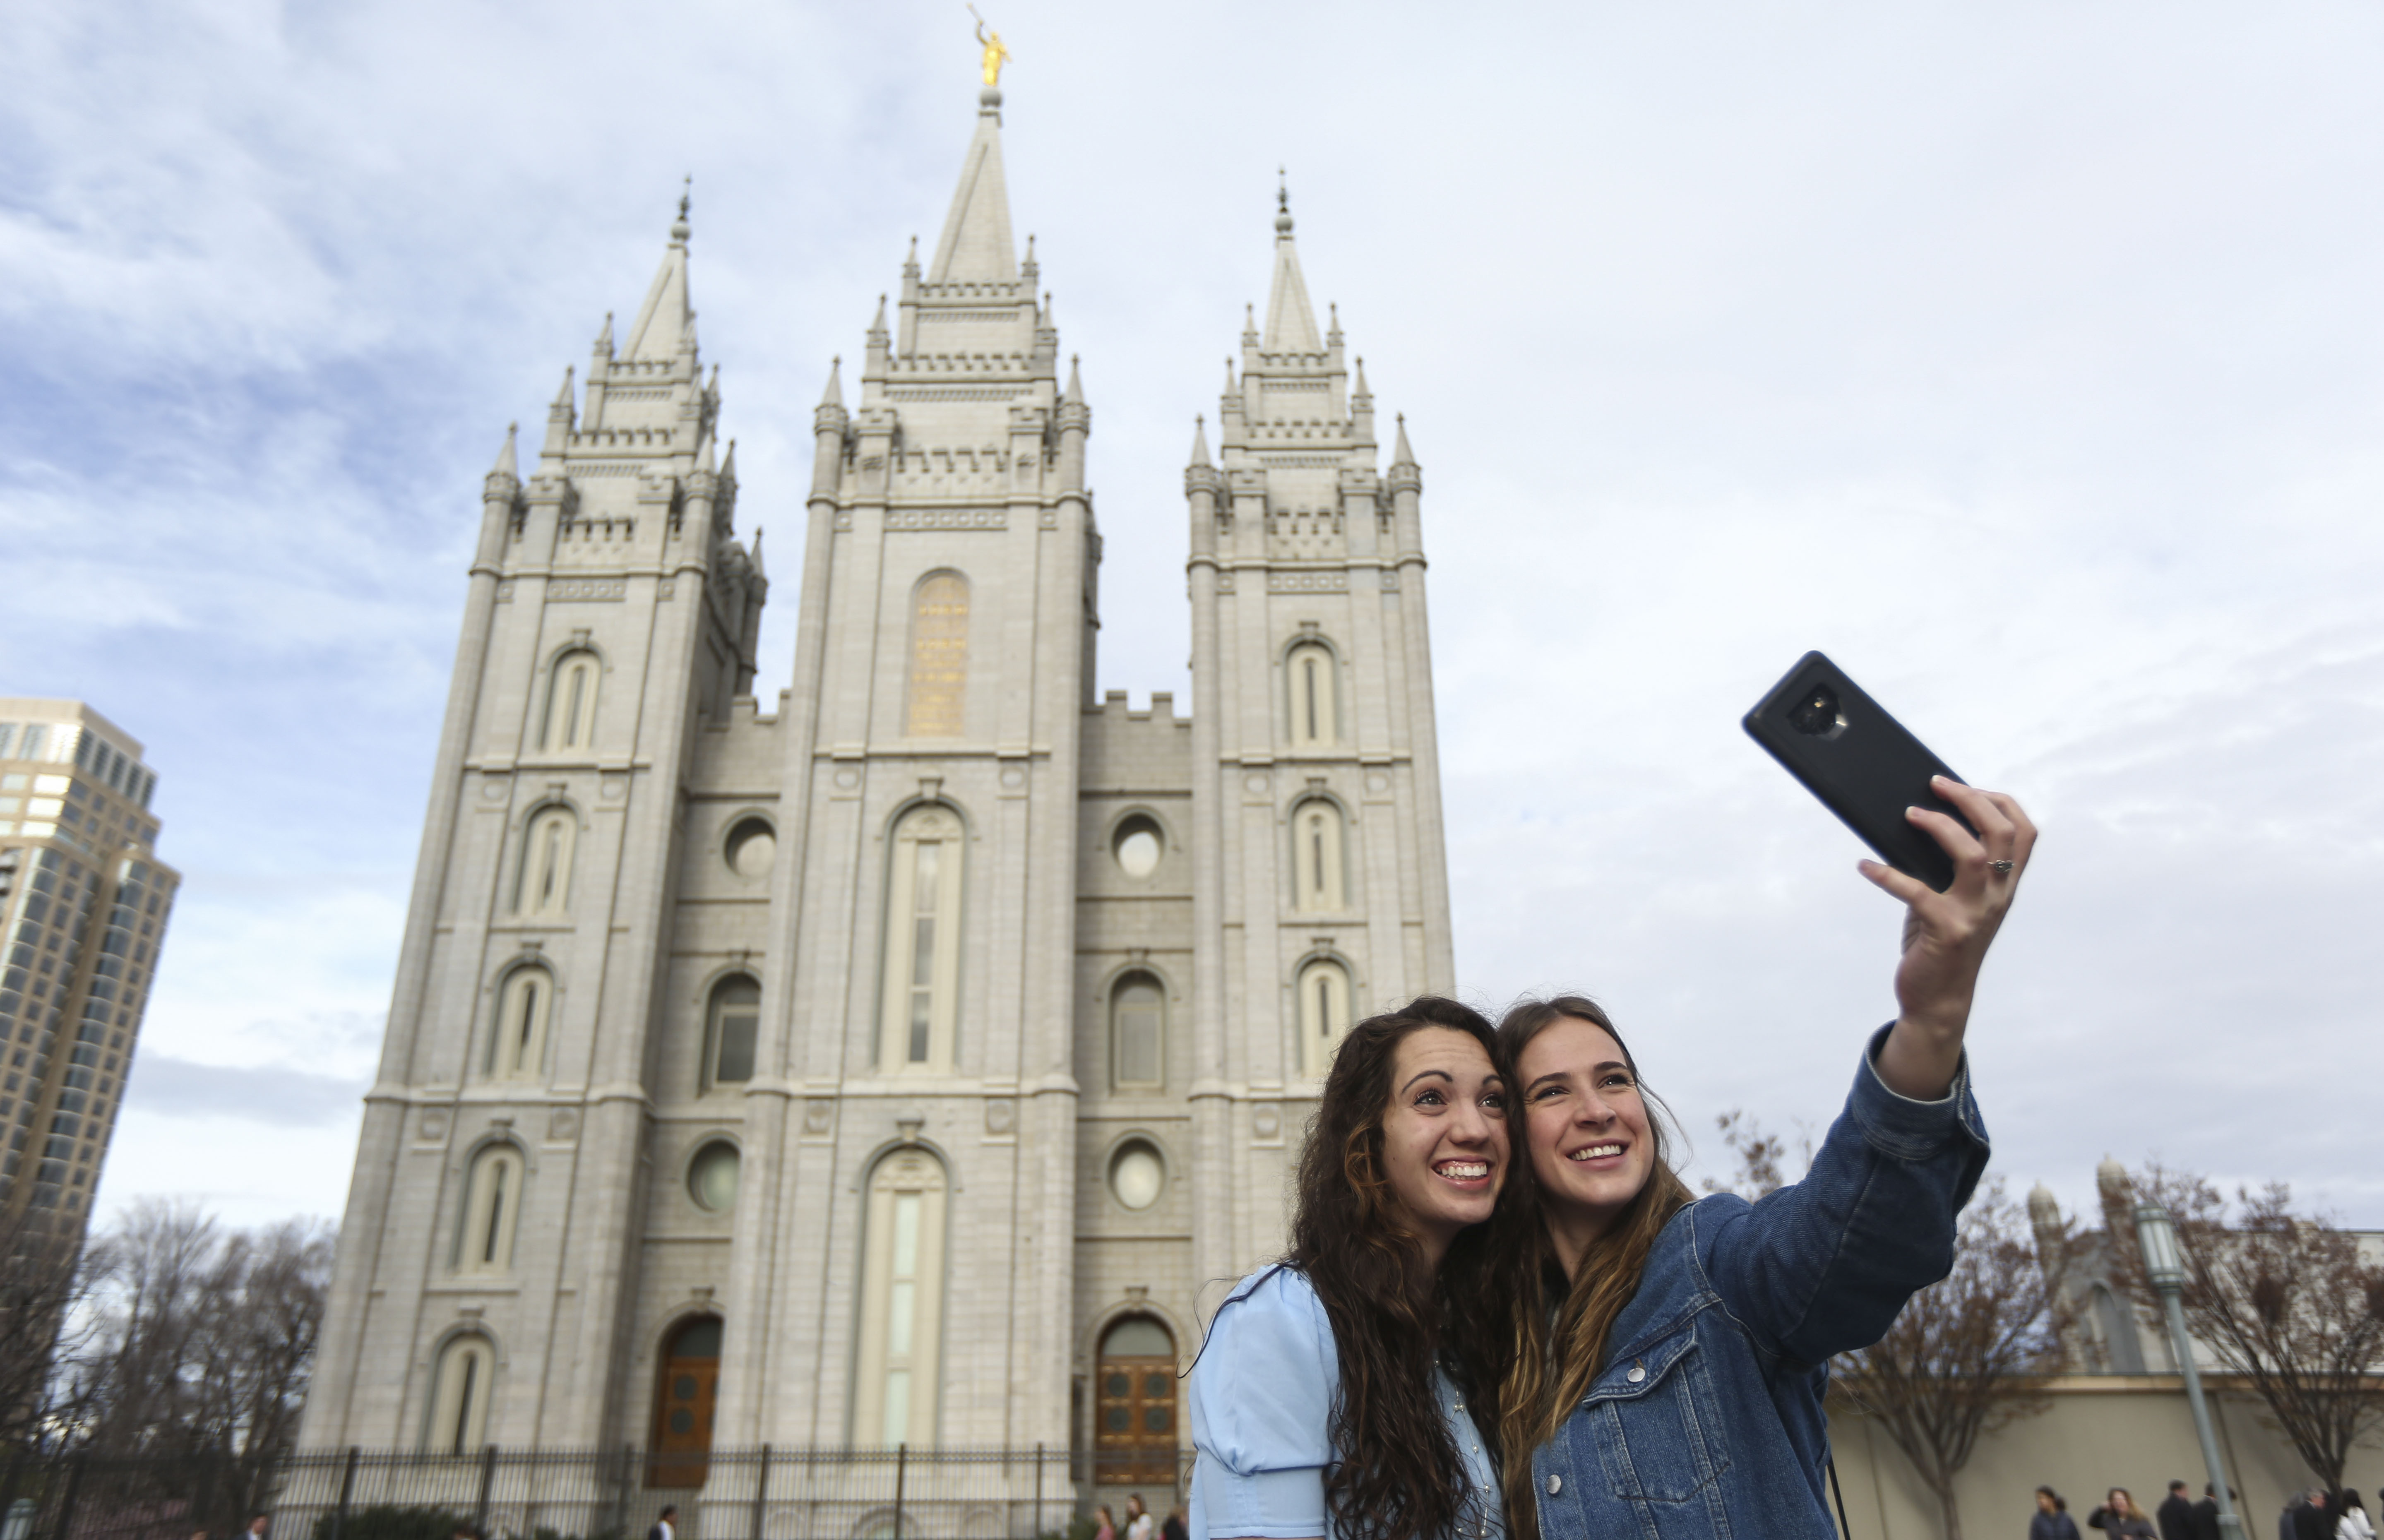 Mika Katich, of Auburn, Ala., and Chelsey Campbell, of California, take a selfie in front of the Salt Lake Temple as conferencegoers arrive at the Conference Center for the Sunday morning session of the 189th Annual General Conference of The Church of Jesus Christ of Latter-day Saints in Salt Lake City on Sunday, April 7, 2019.